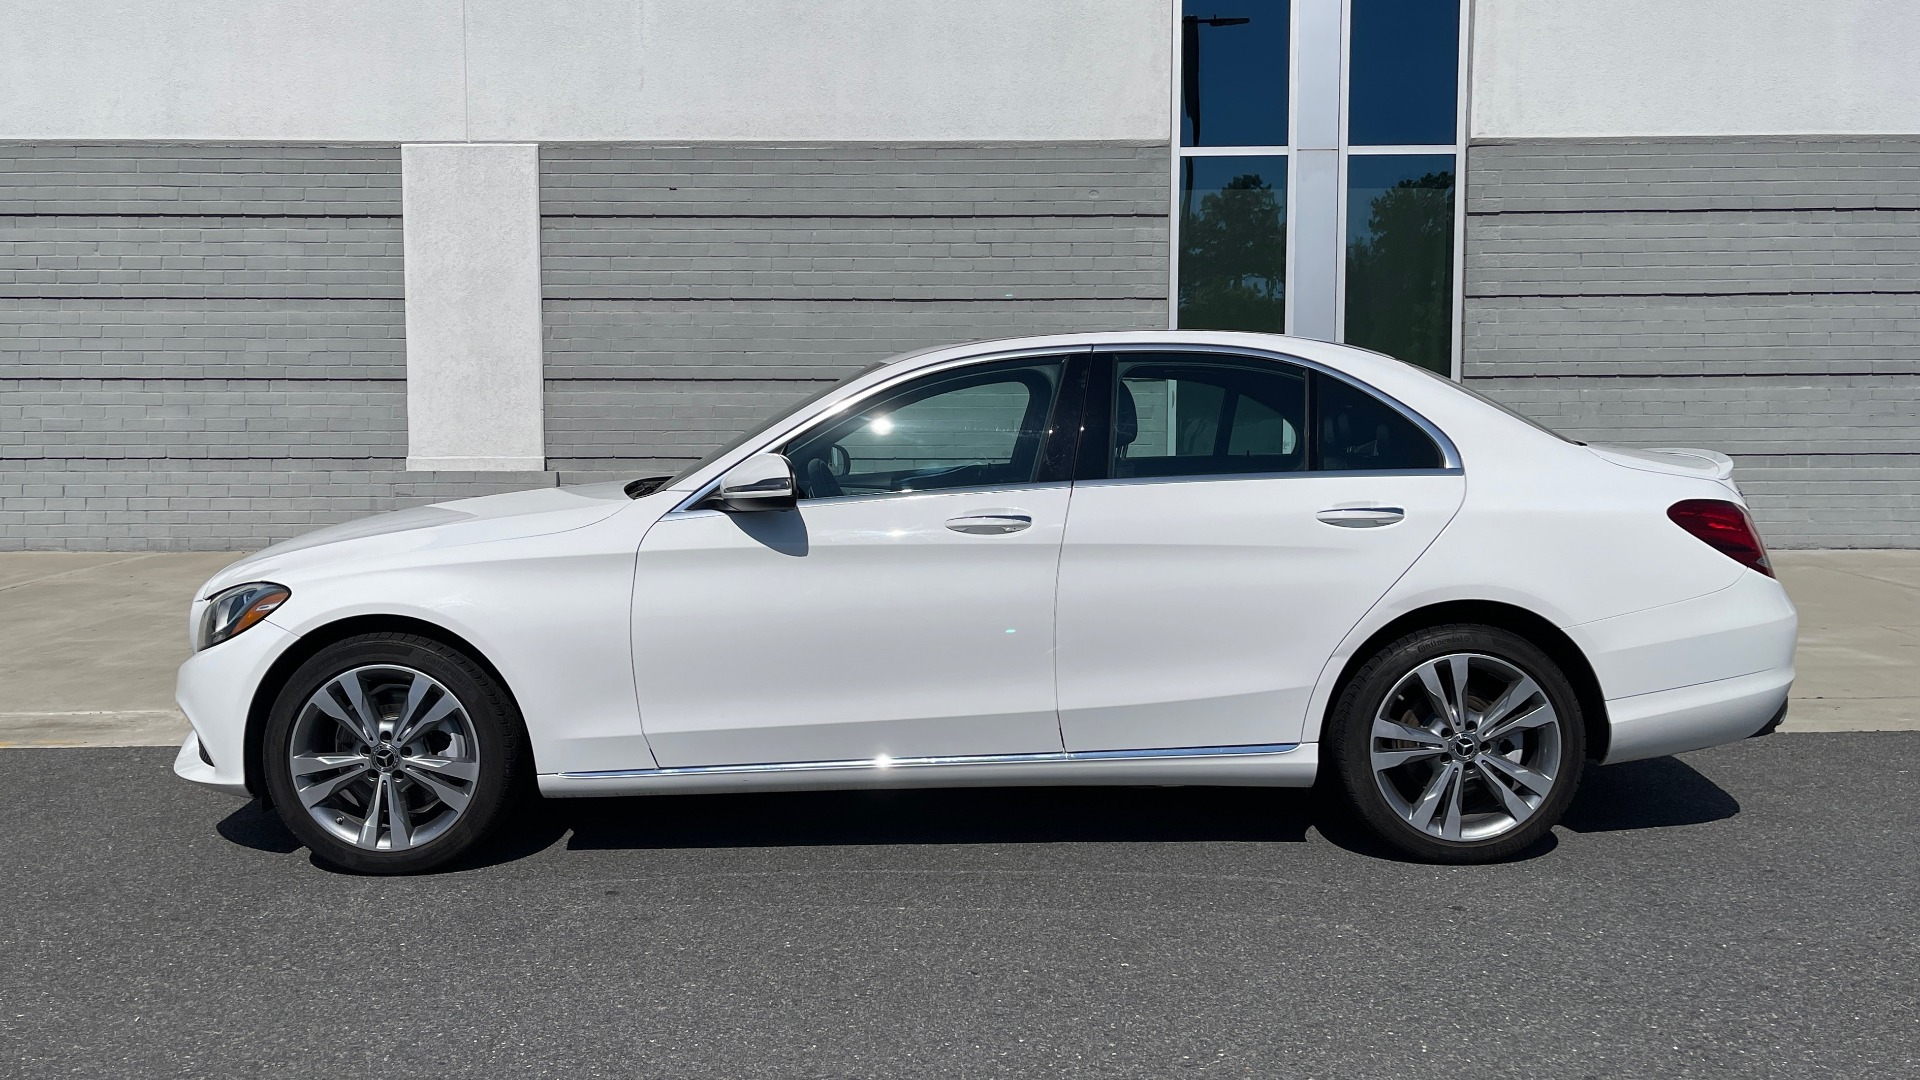 Used 2018 Mercedes-Benz C-CLASS C 300 PREMIUM / APPLE CARPLAY / KEYLESS-GO / SUNROOF / REARVIEW for sale $32,995 at Formula Imports in Charlotte NC 28227 4